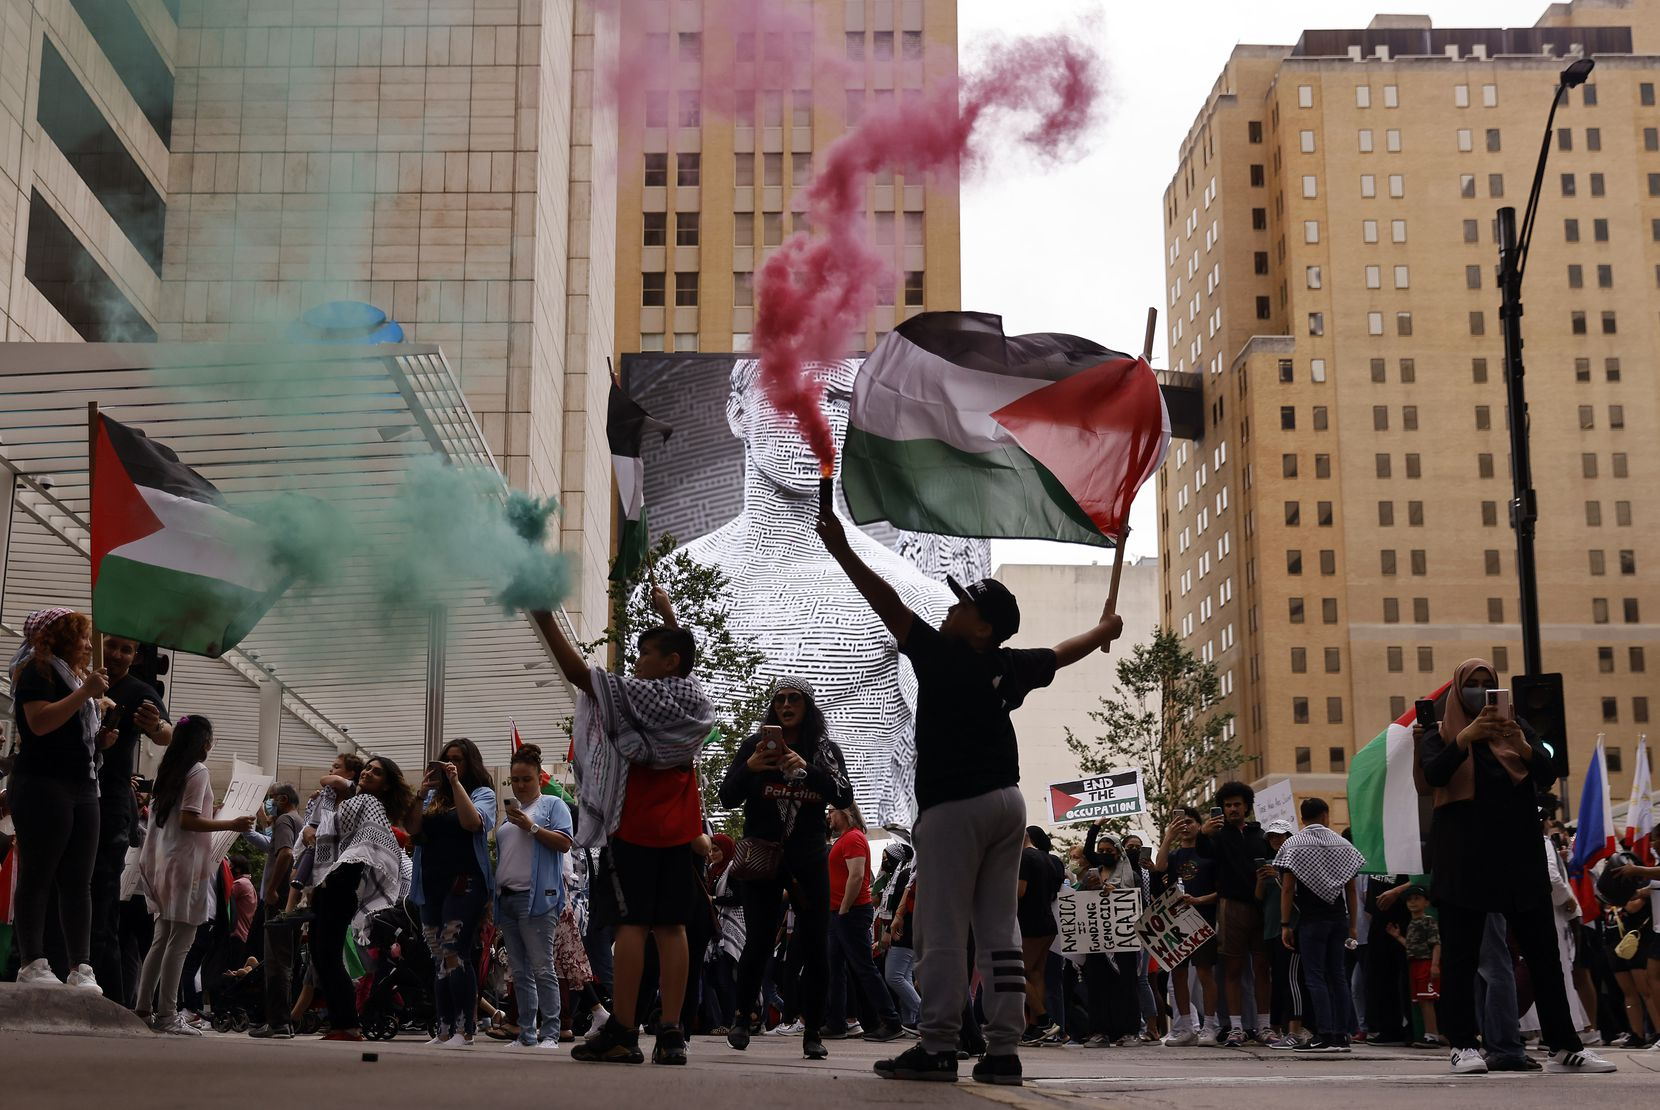 Some demonstrators set off red and green smoke in honor of Palestine.